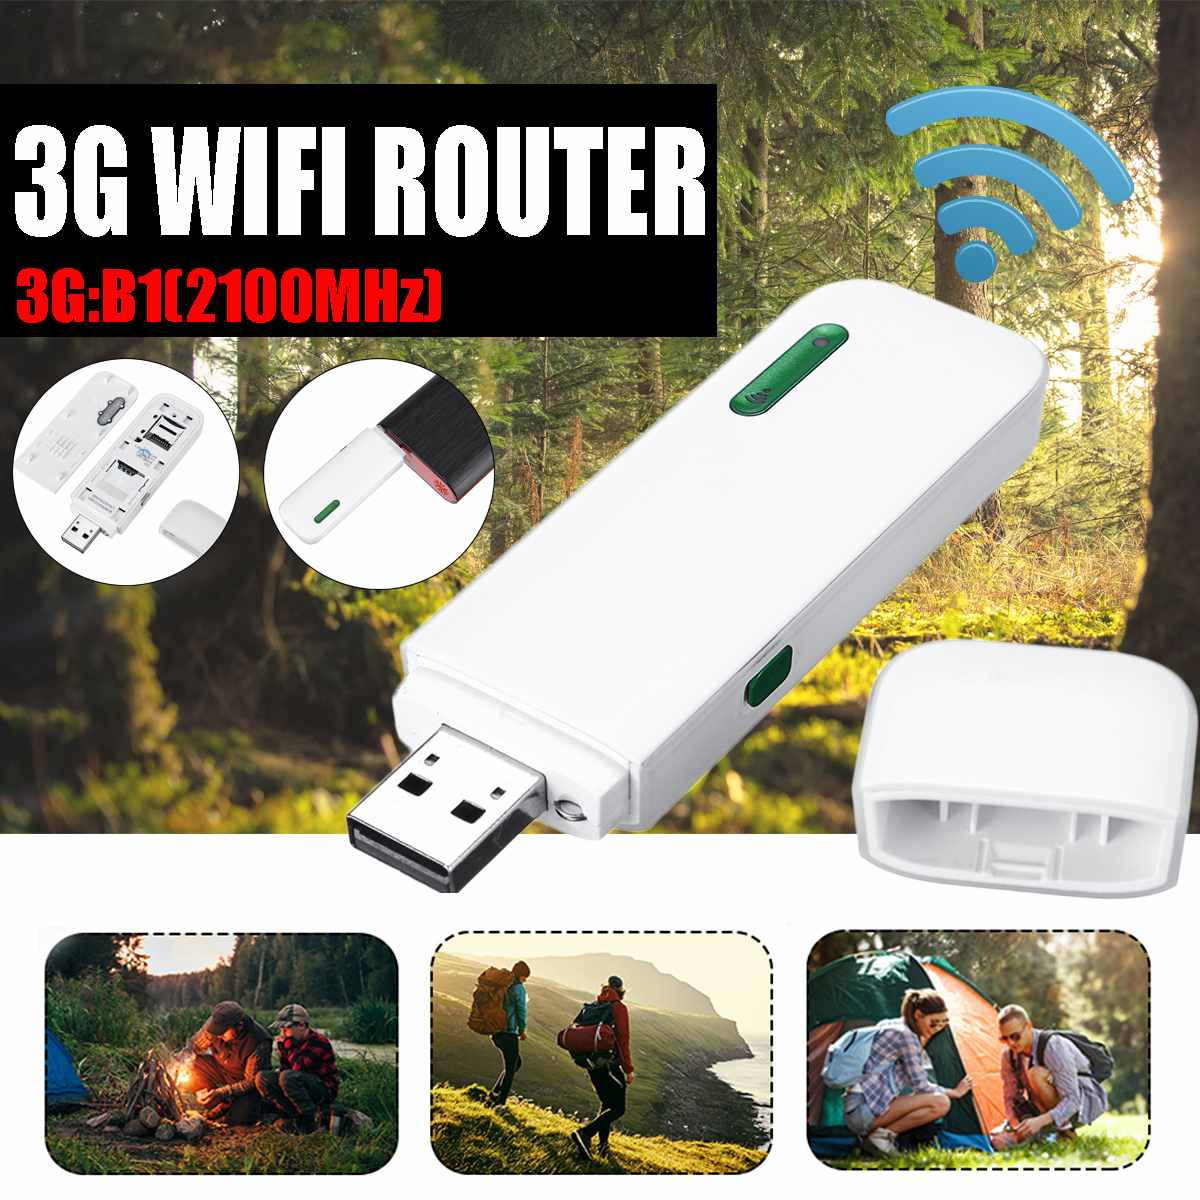 LEORY 3G LTE Modem Wireless WiFi Router 3G USB Modem 150Mbps Dongle Network WiFi Hotspot SIM Card slot(China)